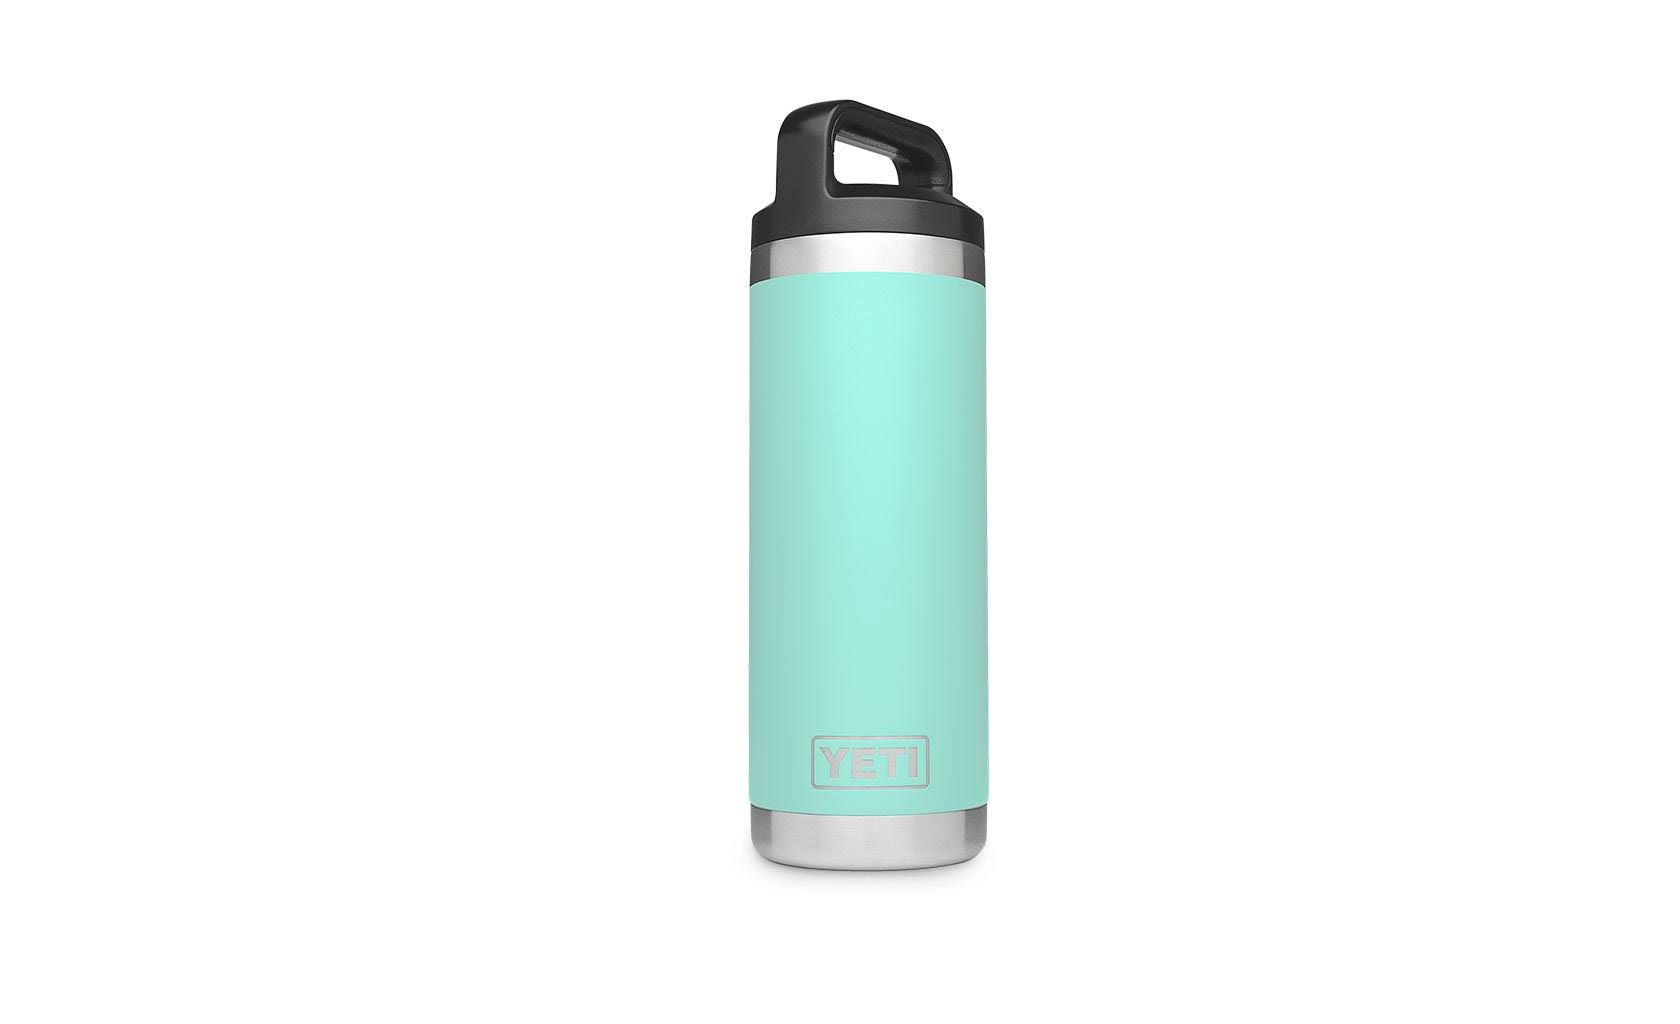 Yeti Rambler Stainless Steel Vacuum Insulated Bottle with Cap - 18oz